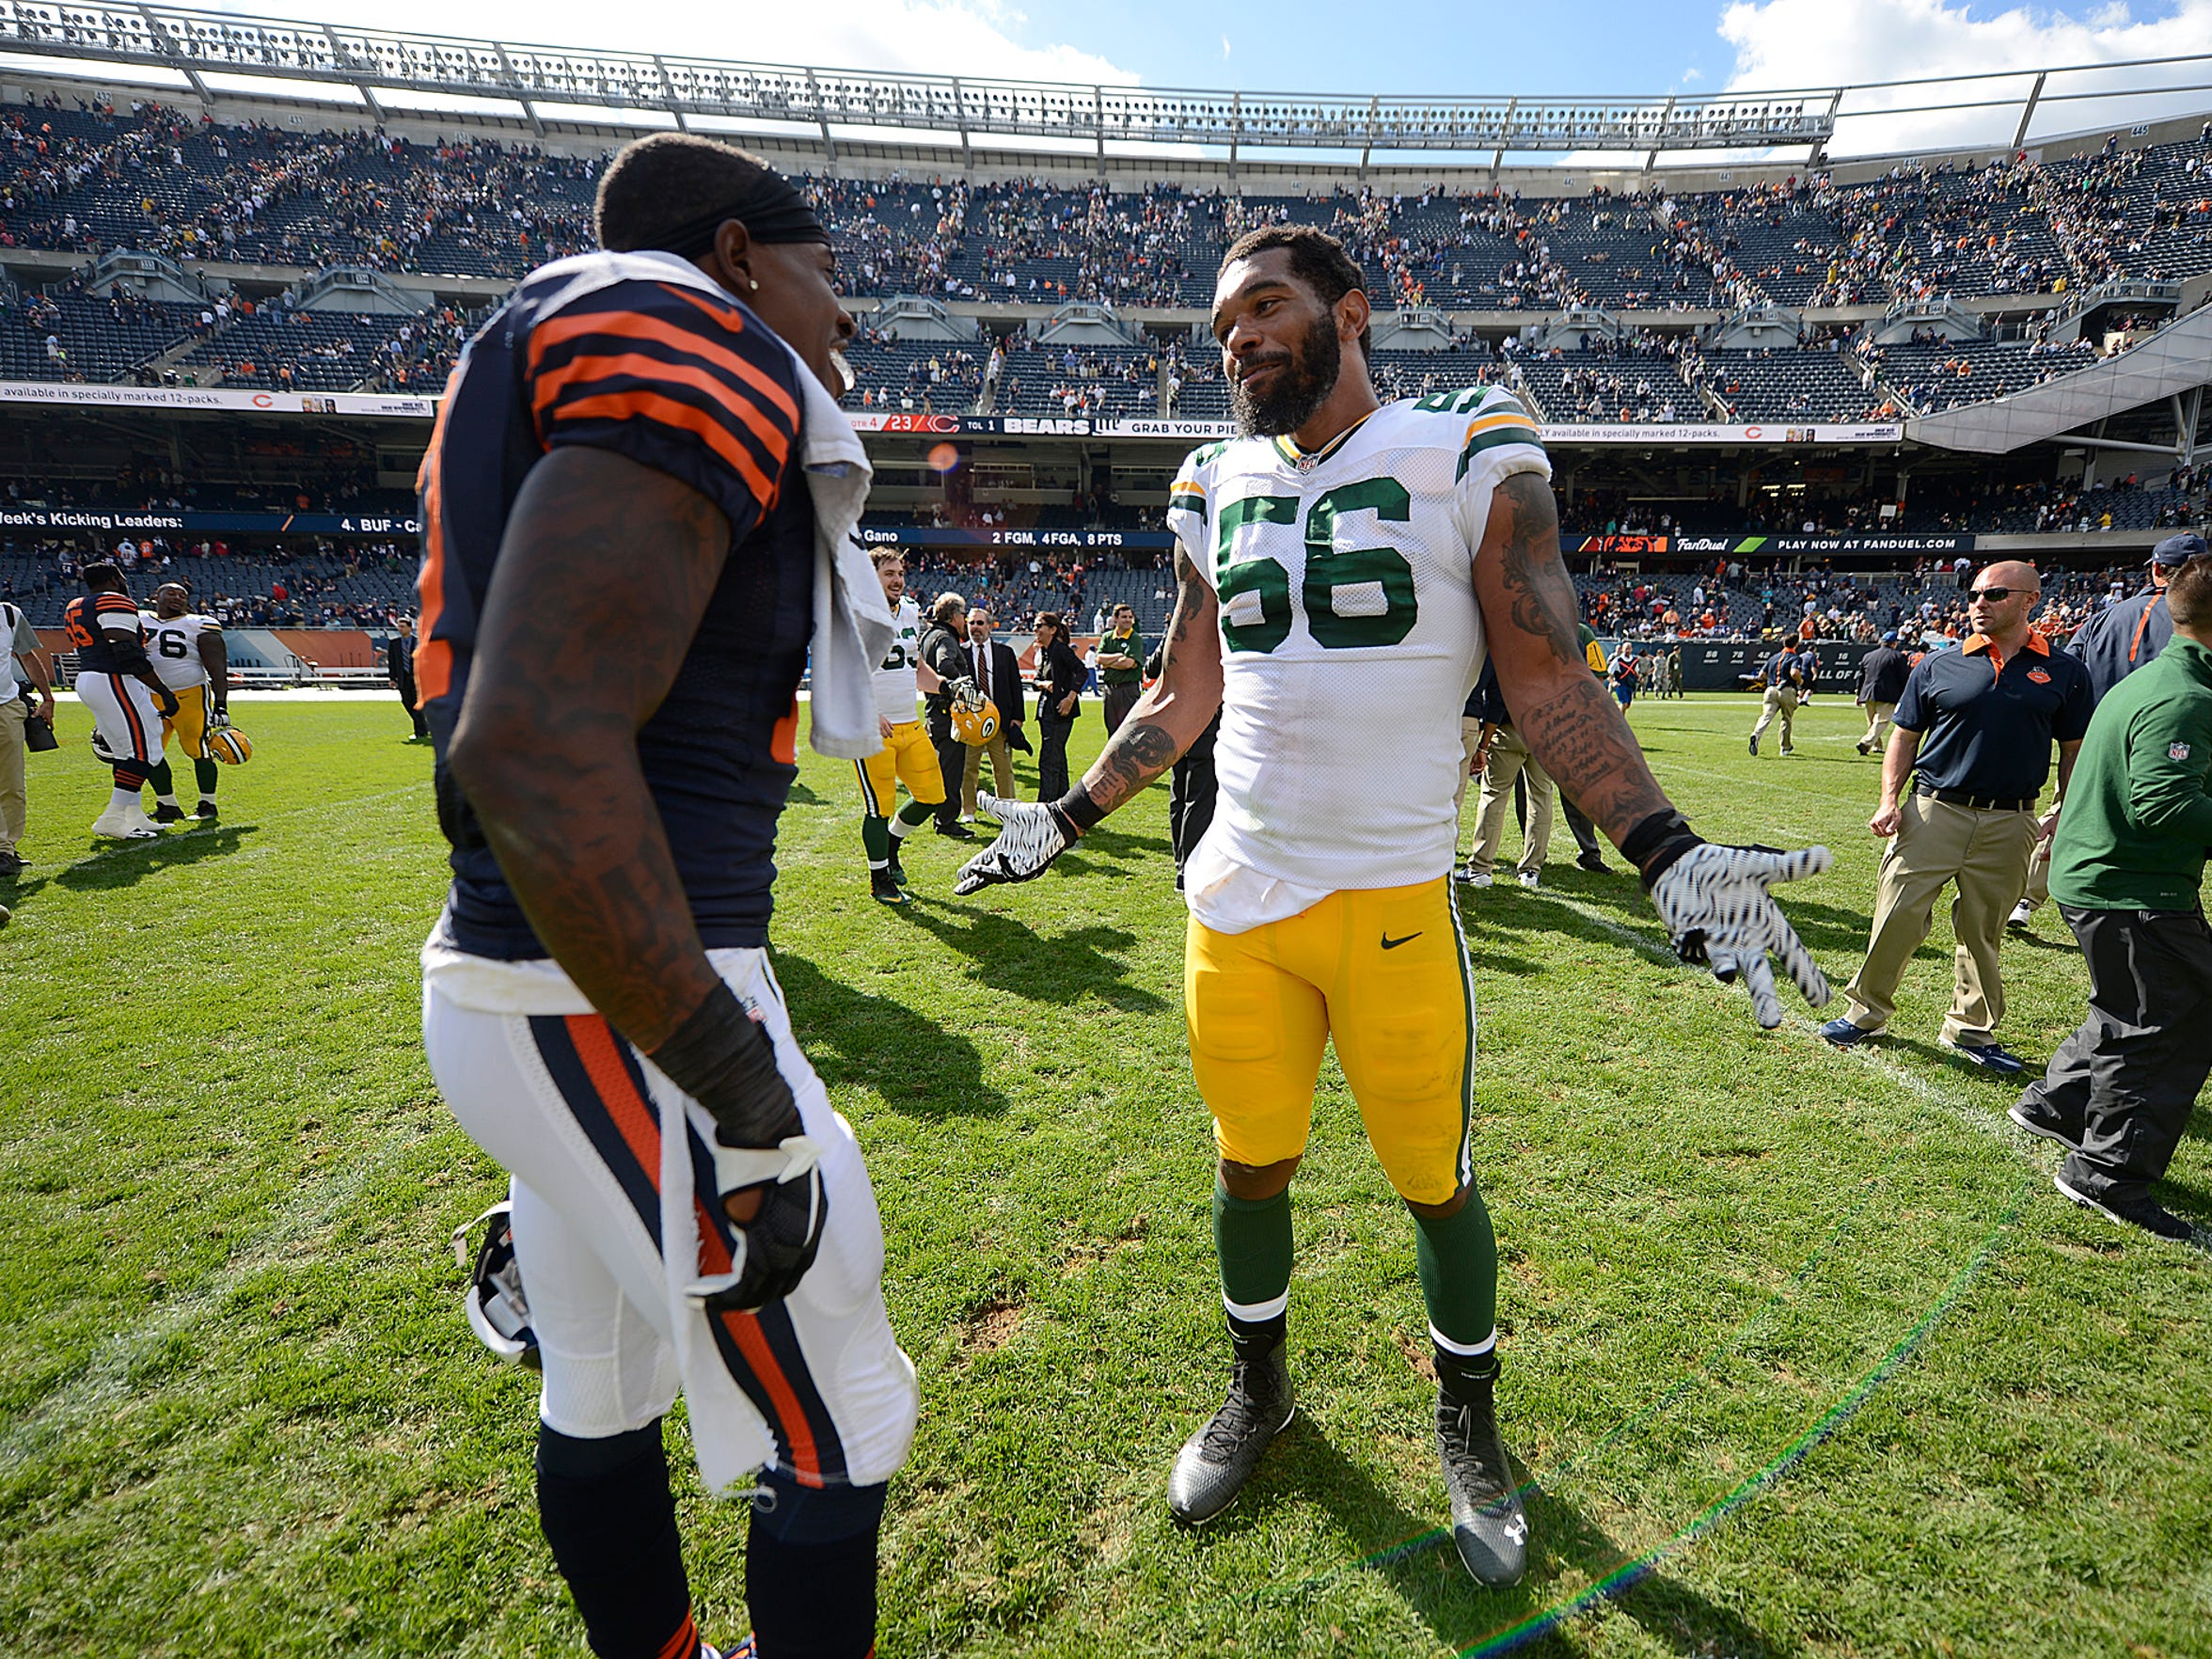 Green Bay Packers linebacker Julius Peppers has some fun with Chicago Bears receiver Alshon Jeffery after Sunday's game at Soldier Field in Chicago. The Packers defeated the Bears 31-23.